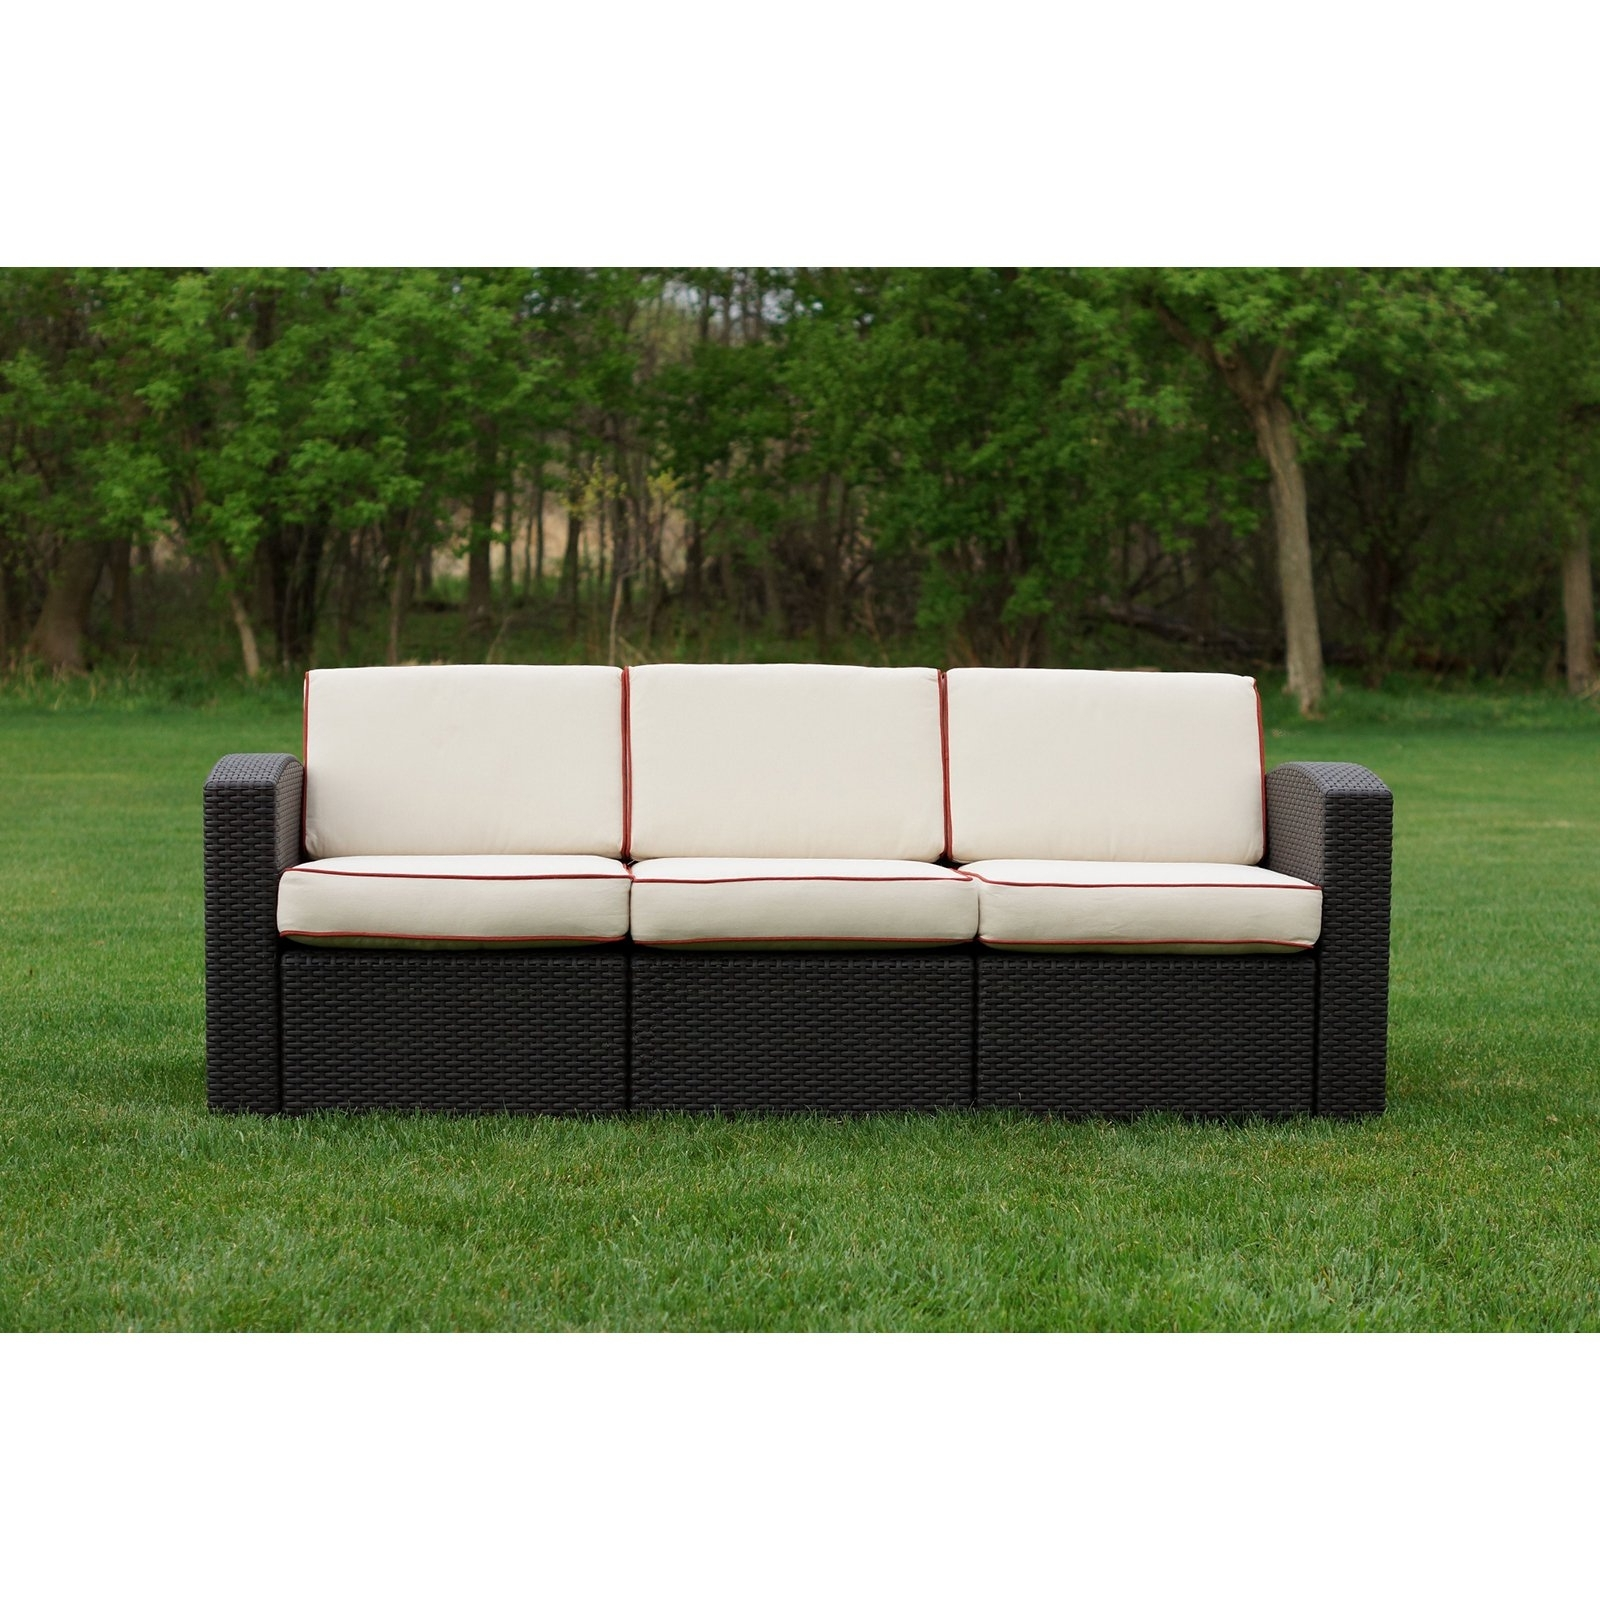 Patio Sofas Pertaining To Latest Strata Furniture Cielo Patio Wicker Sofa (View 17 of 20)